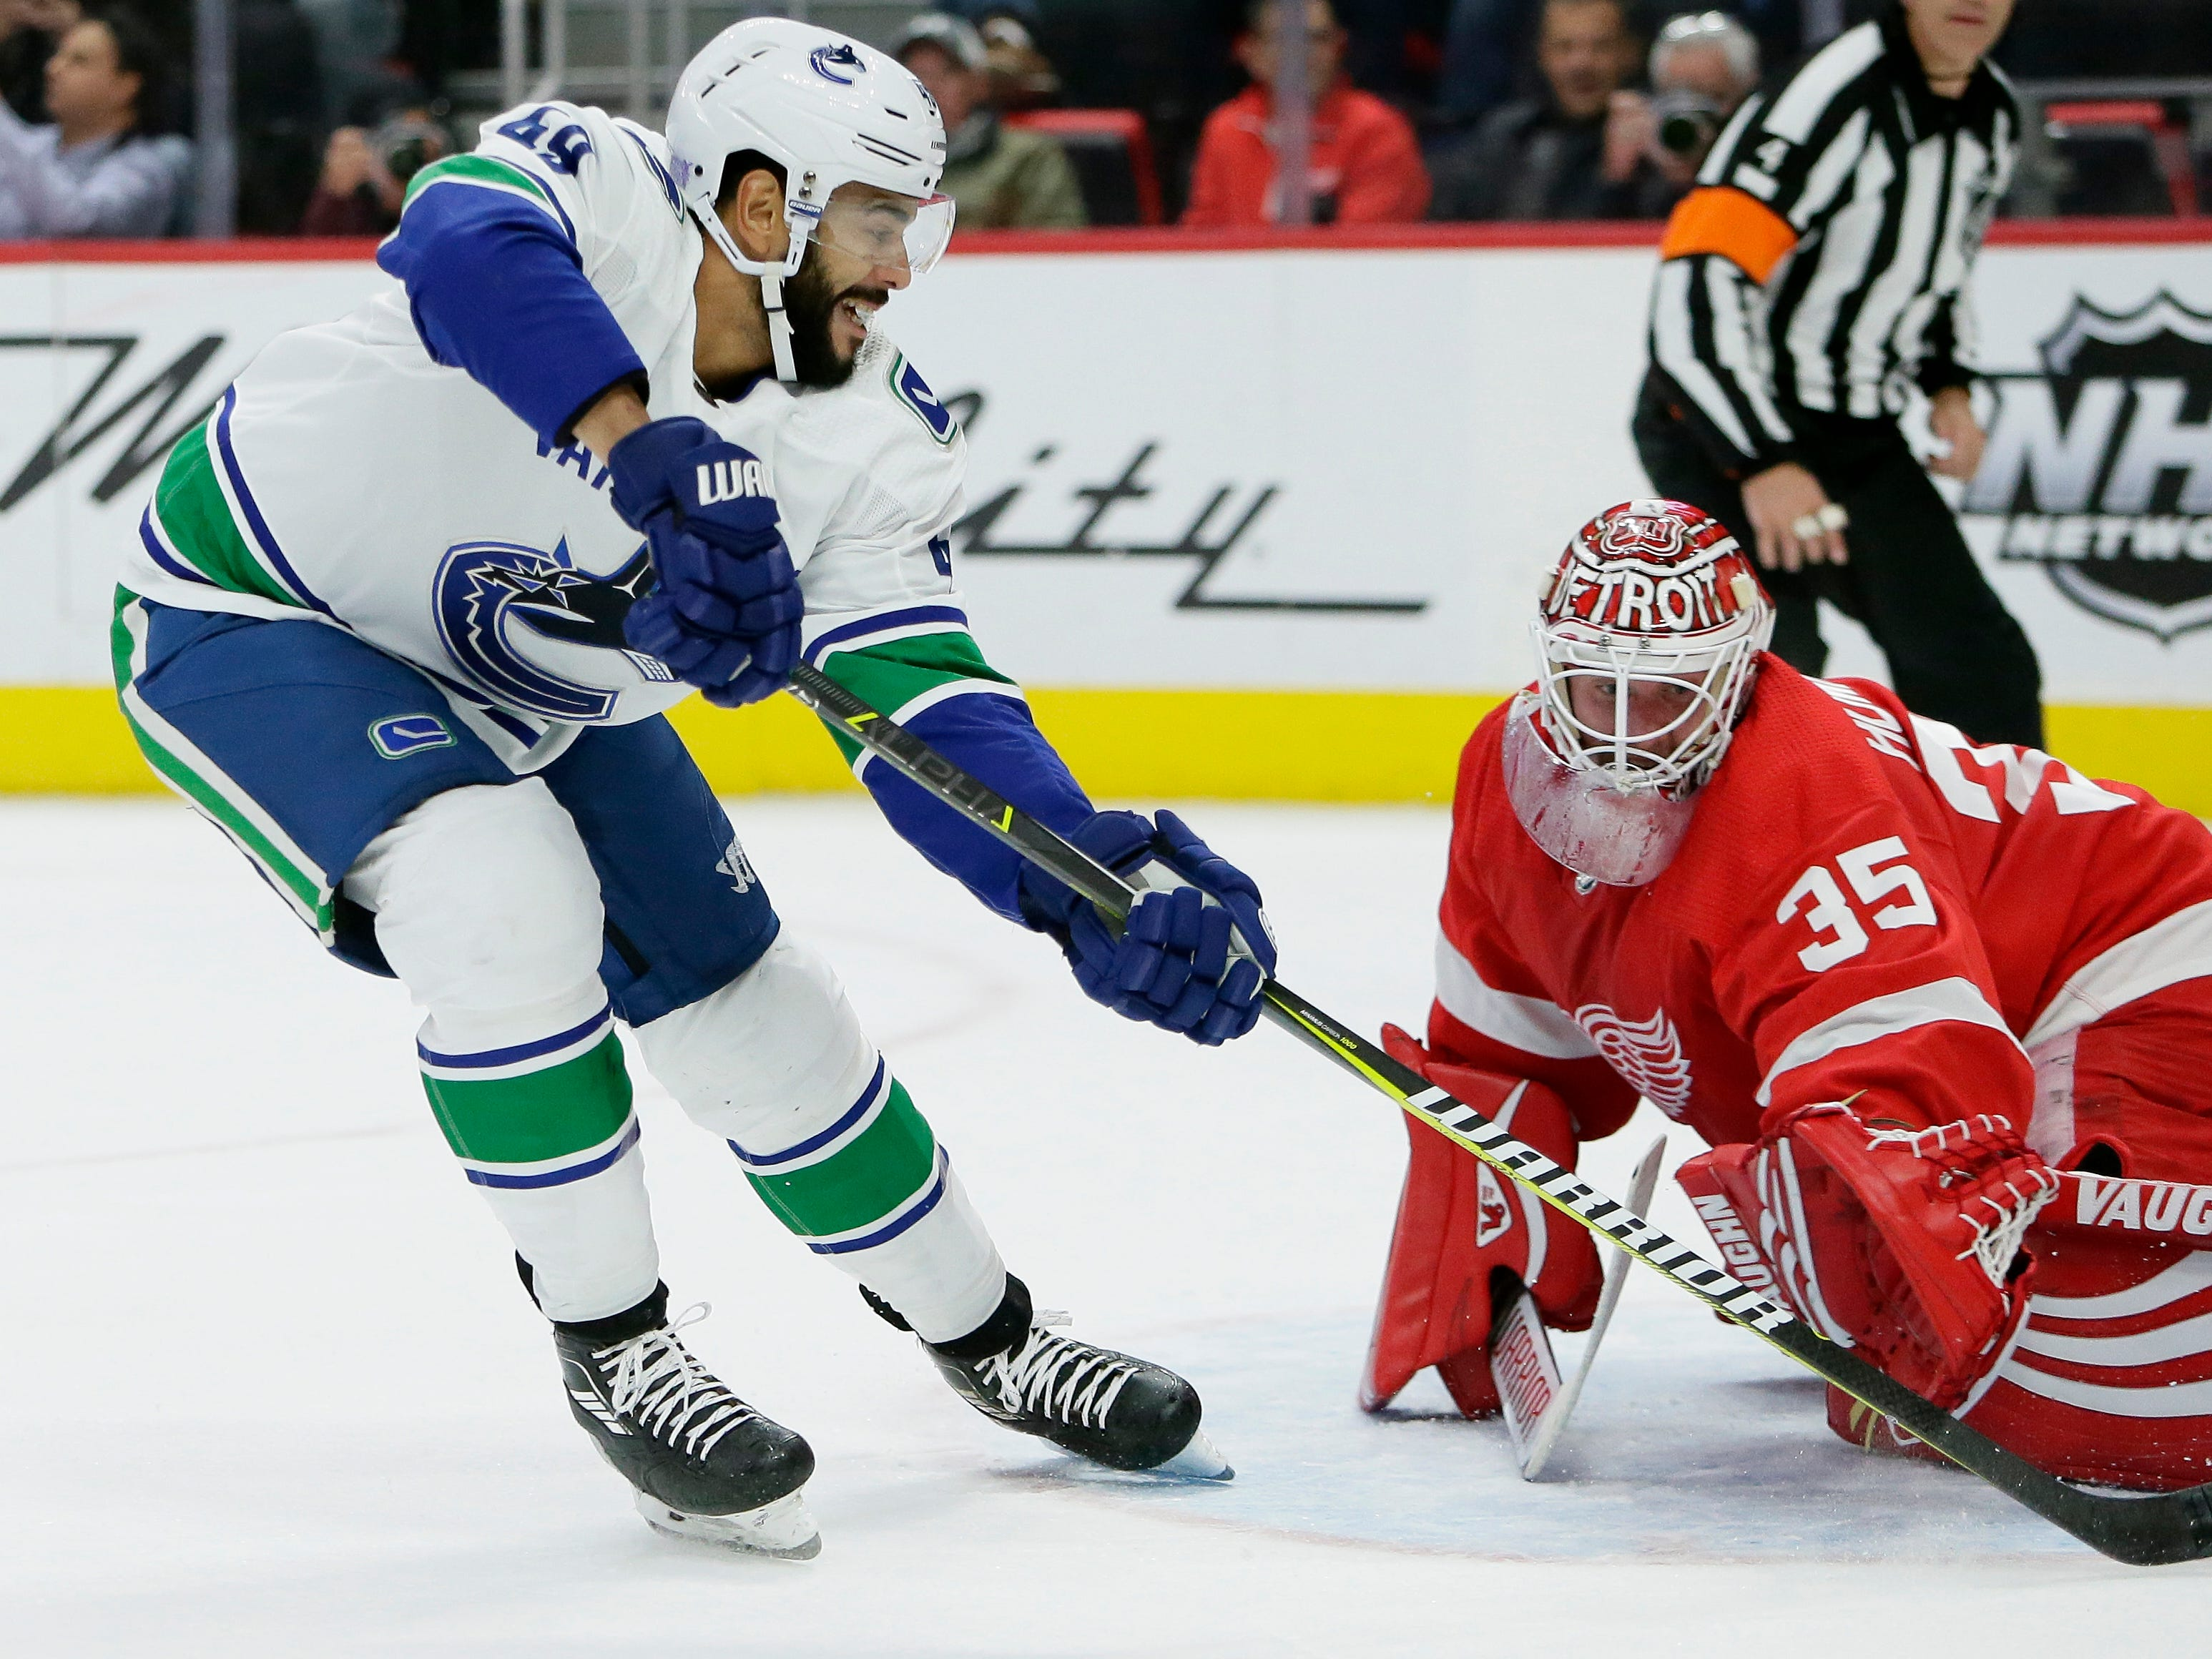 Vancouver Canucks left wing Darren Archibald (49) drives on Detroit Red Wings goaltender Jimmy Howard (35) during the first period of an NHL hockey game Tuesday, Nov. 6, 2018, in Detroit.